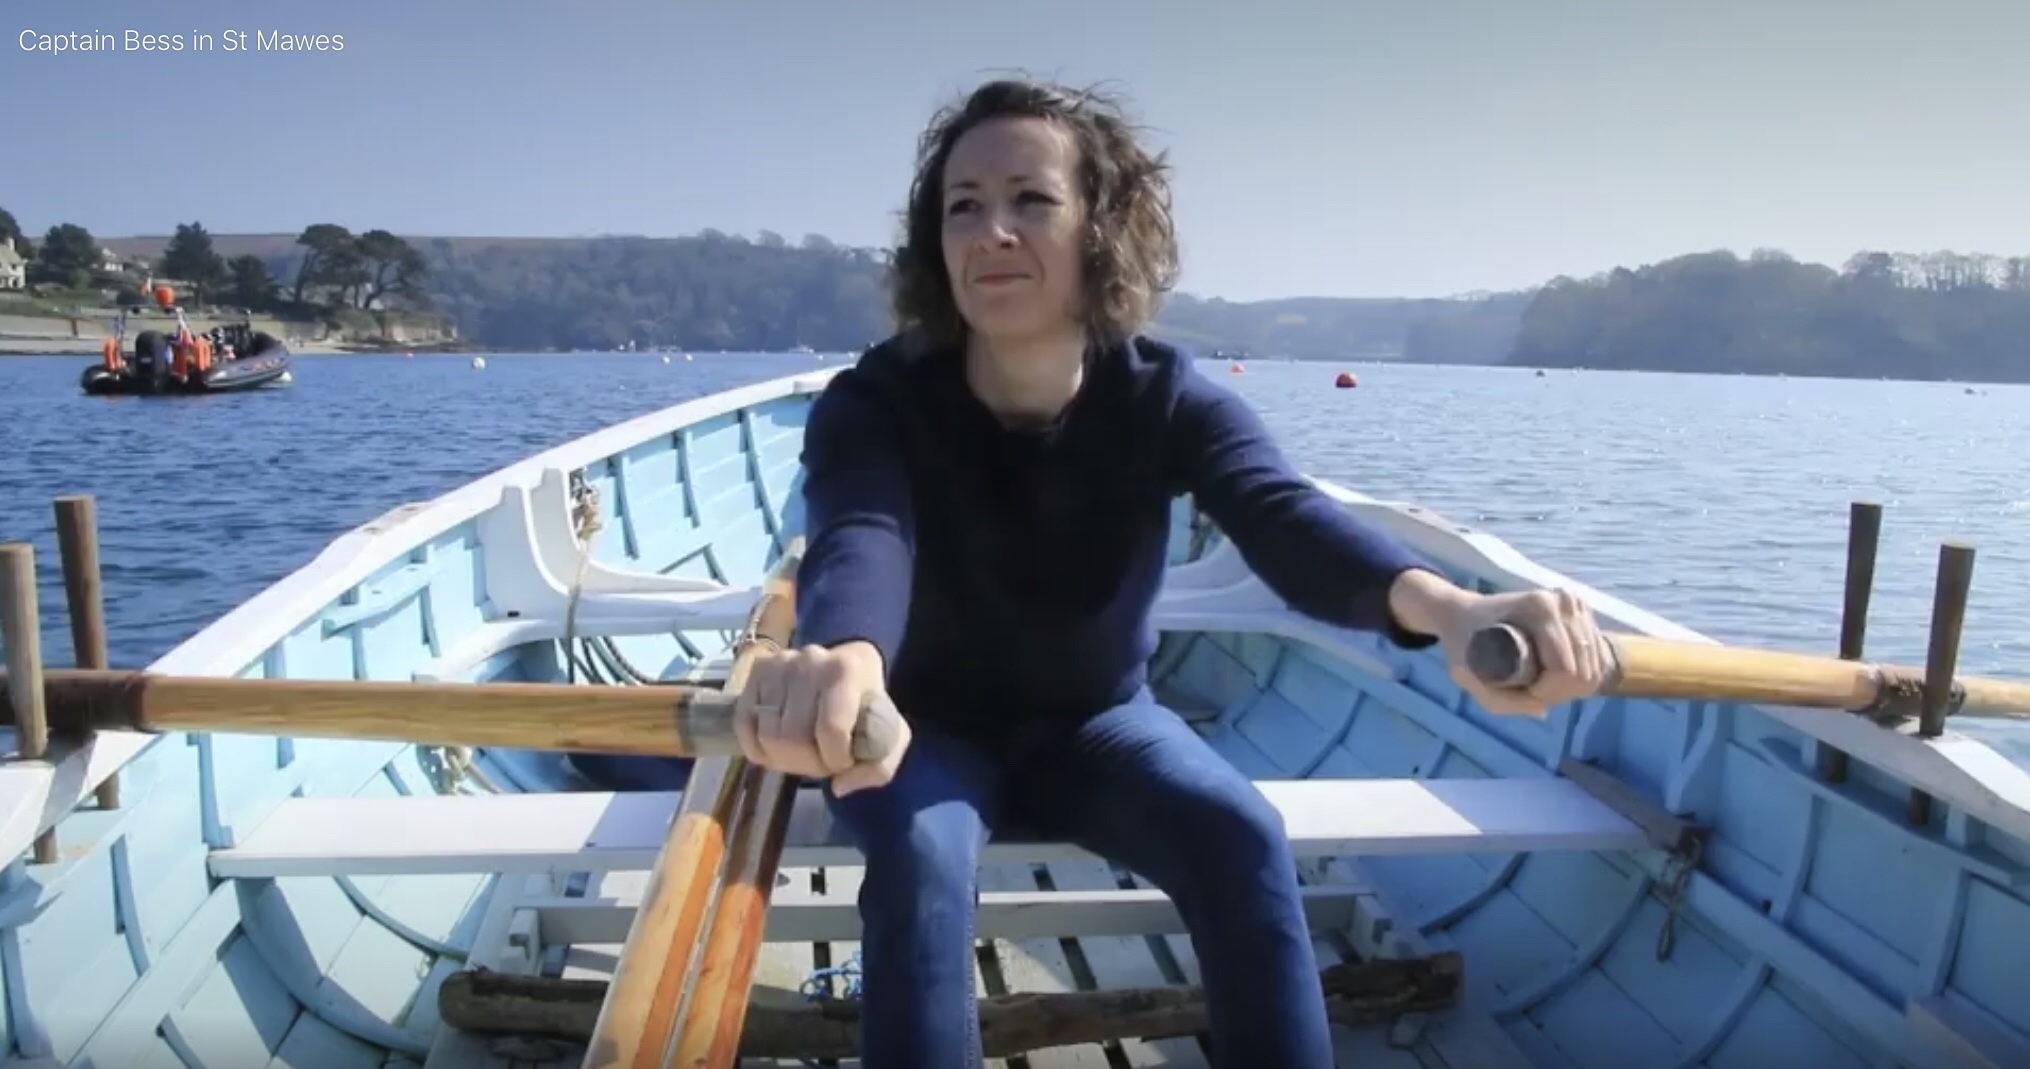 depression, anxiety, personal, grief, counselling, psychotherapy, wellbeing, Aromatherapy, massage, Belper, Derbyshire, essential oils, st mawes, Cornwall, rowing, gig rowing, happy place